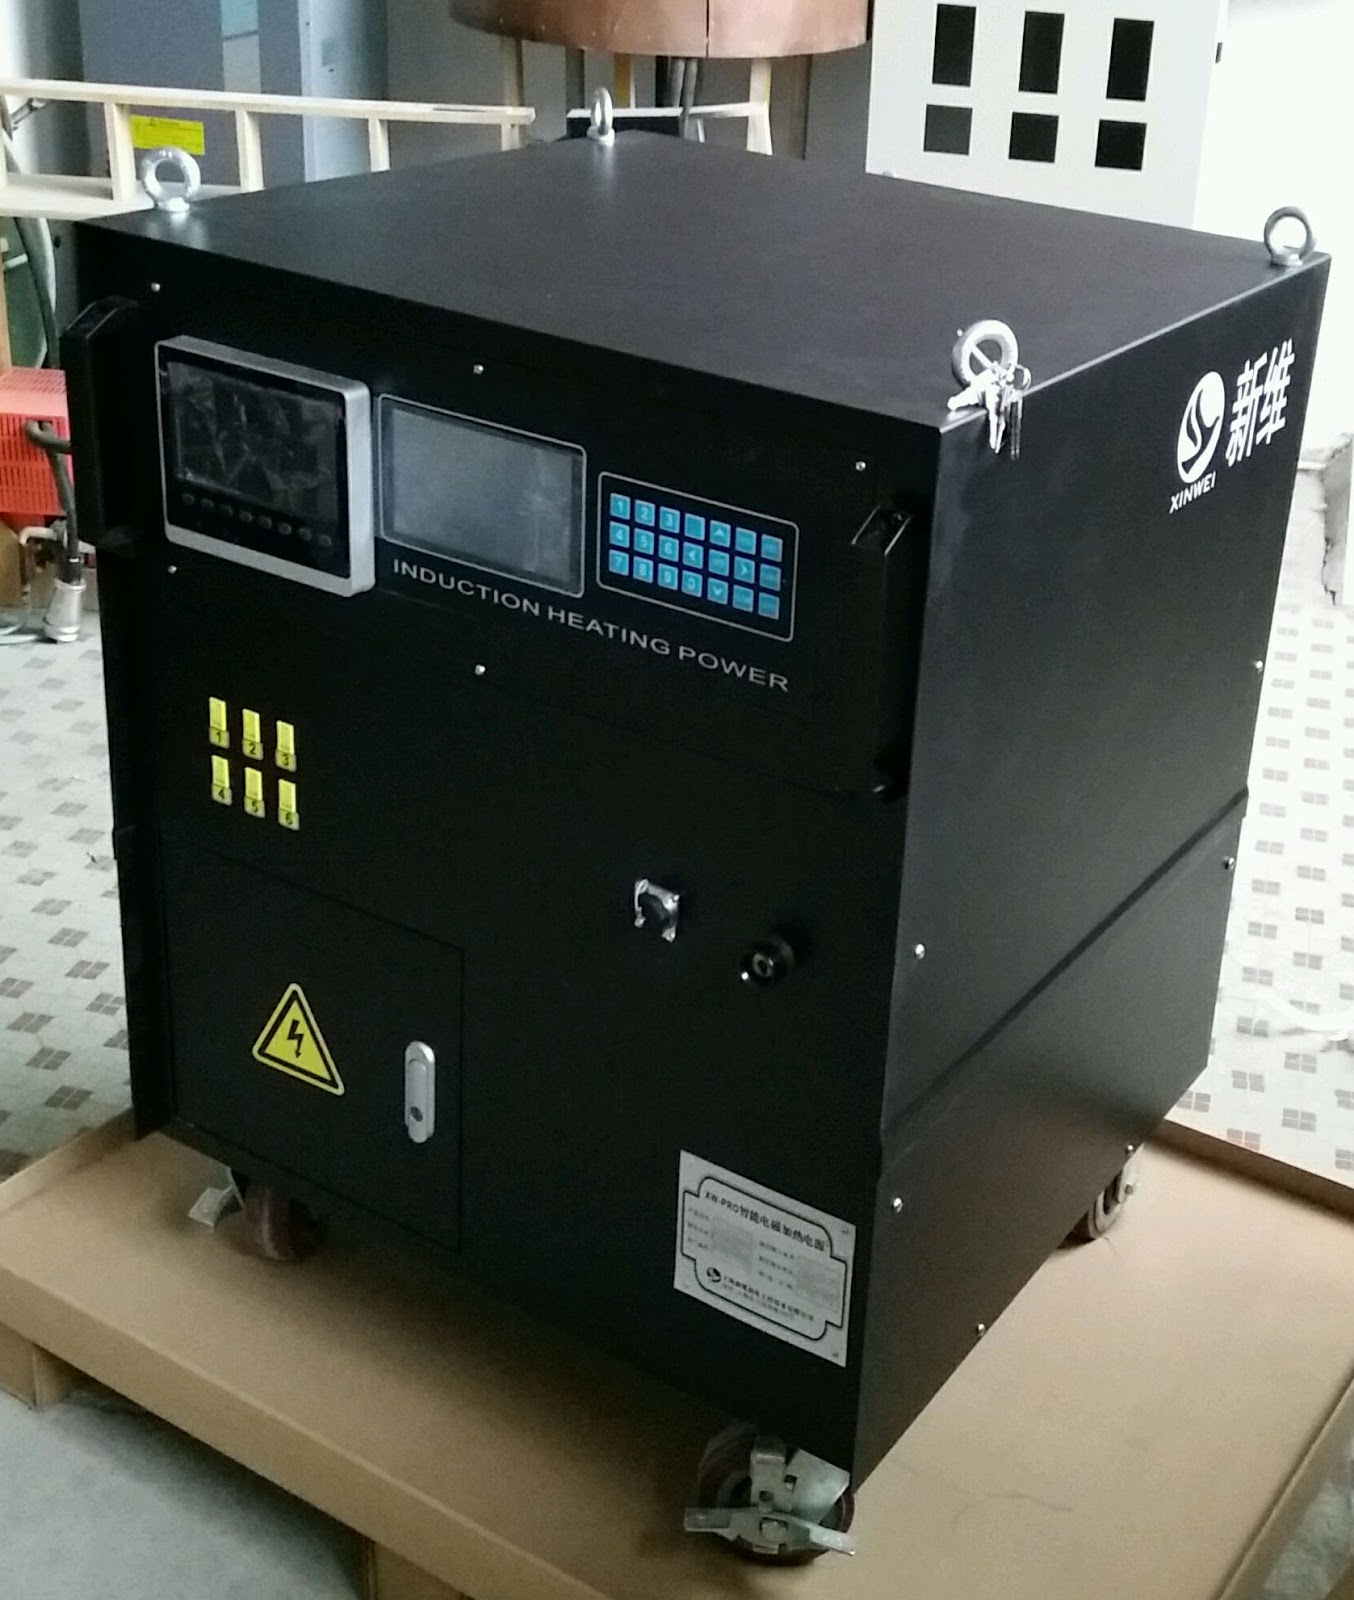 Induction Heating Equipment : Preheat pwht equipment machine system similar to miller